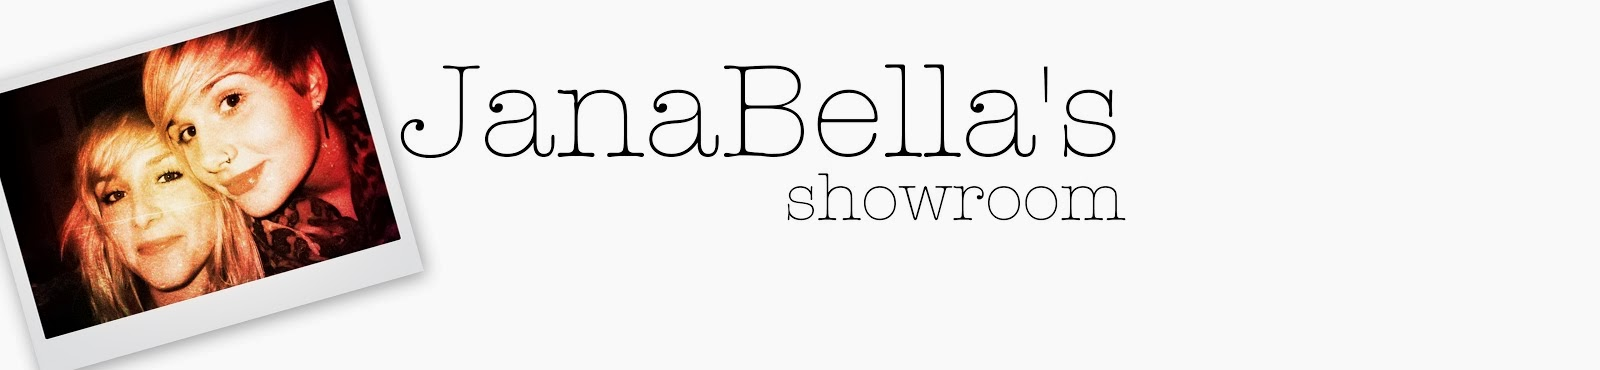 JanaBella's Showroom